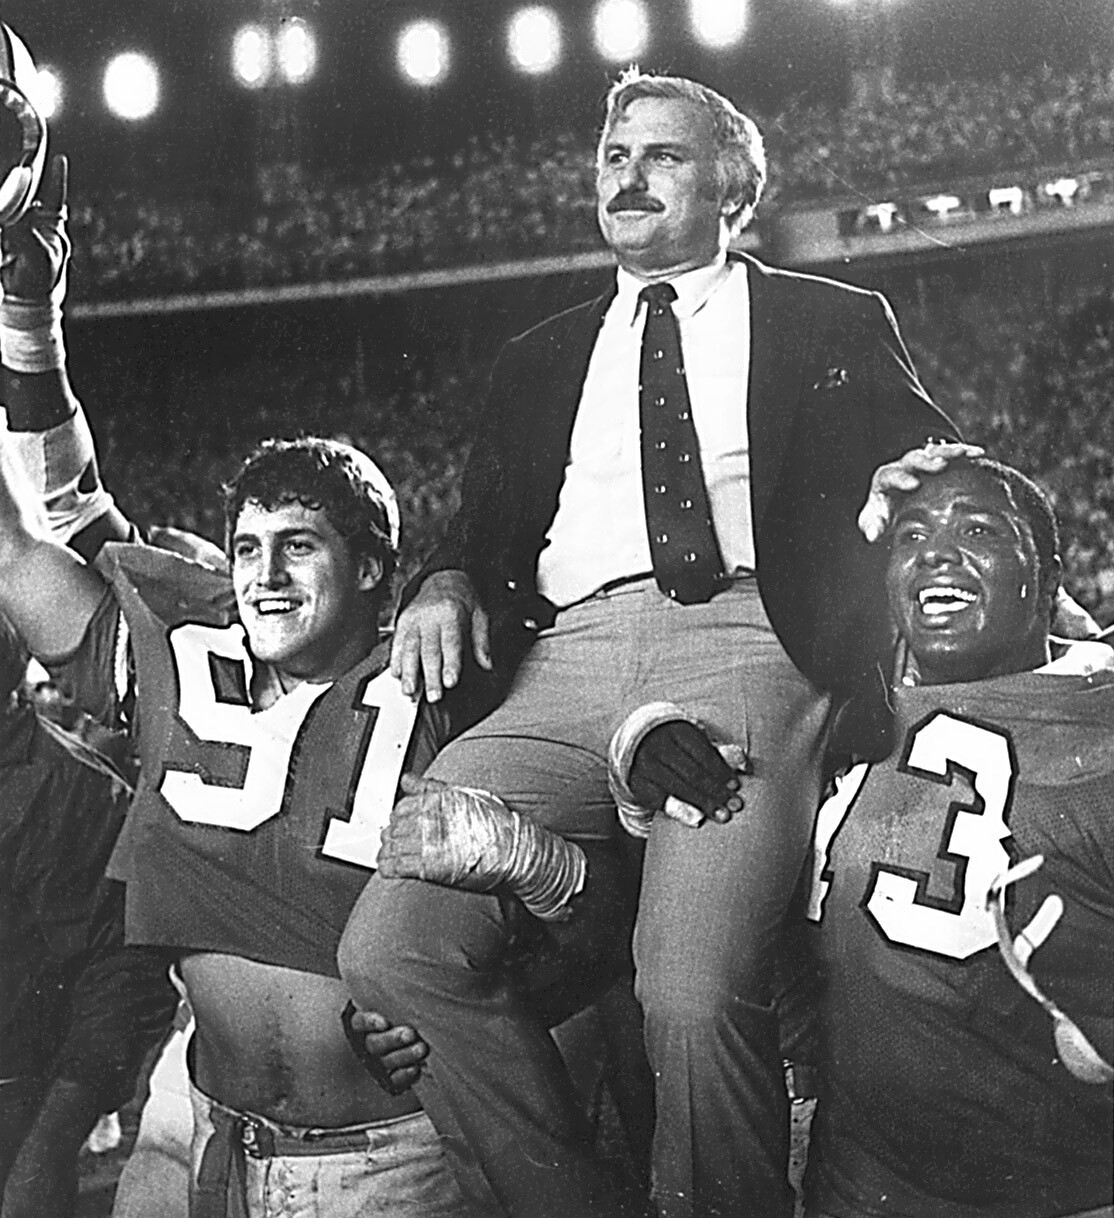 Miami Hurricanes head coach Howard Schnellenberger carried off field after winning 1984 Orange Bowl